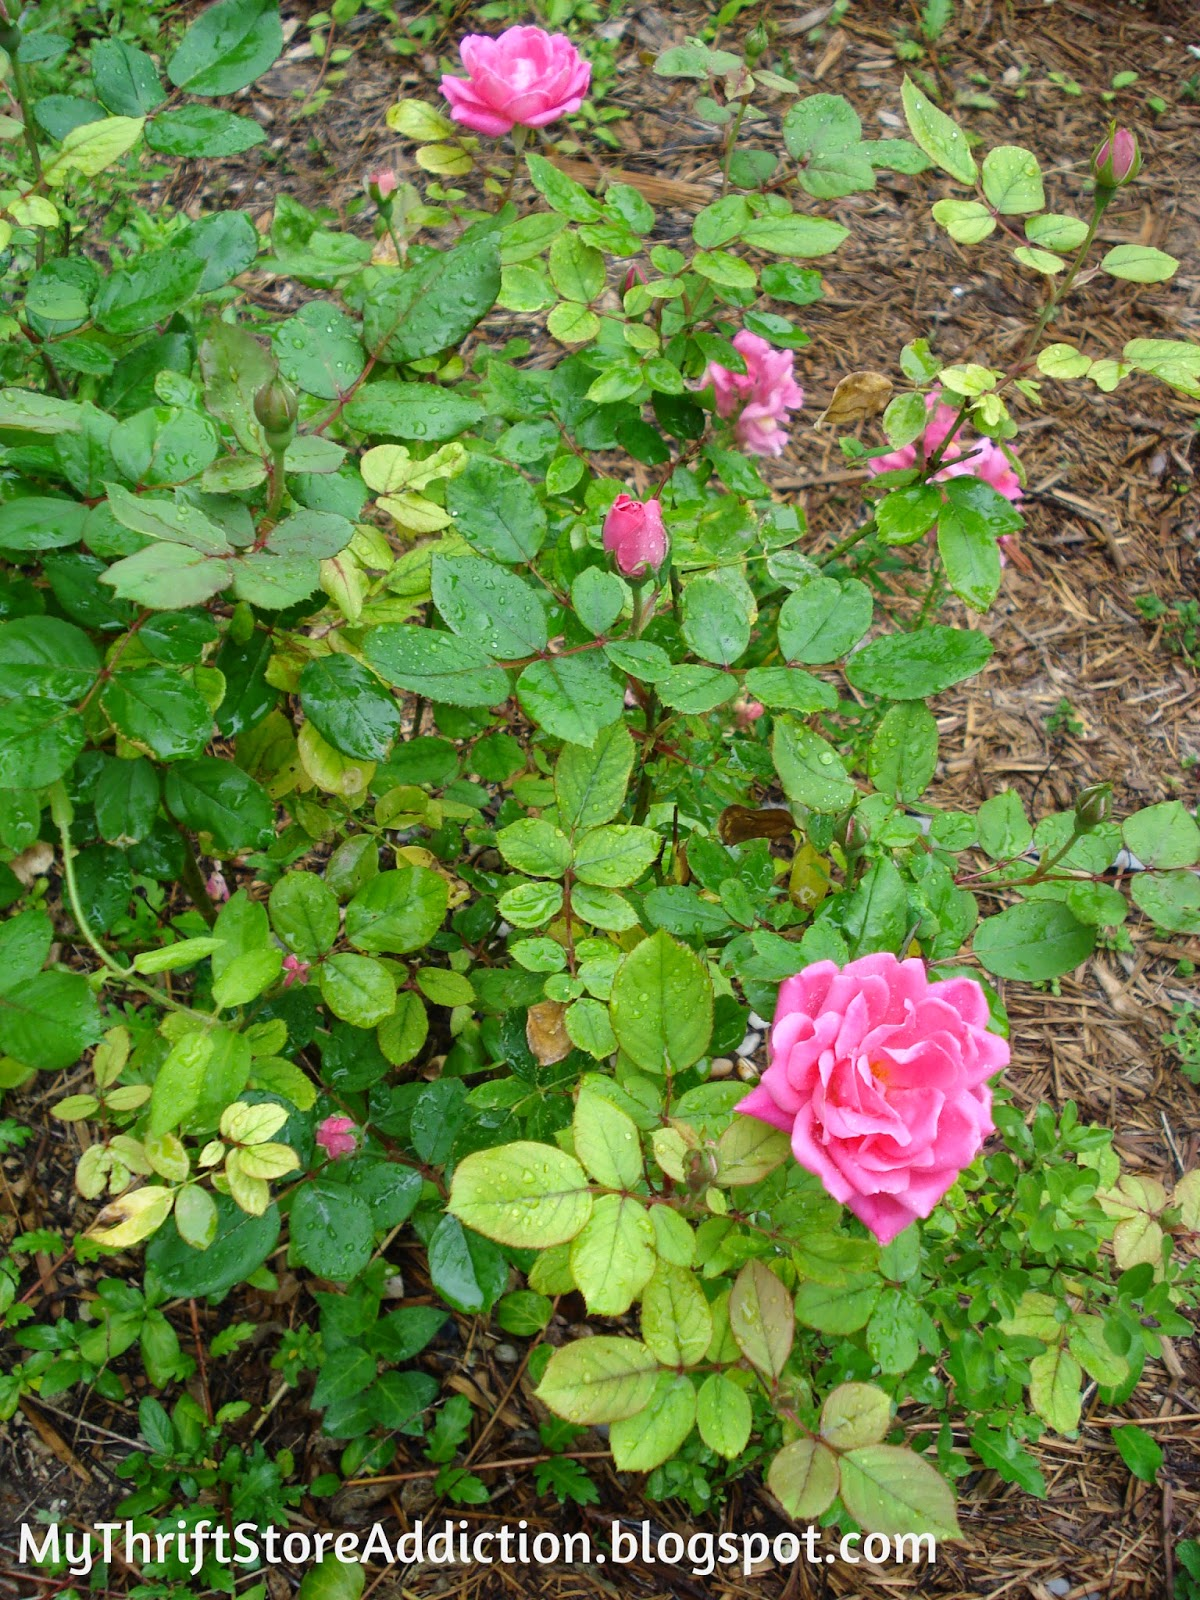 Roses In Garden: My Thrift Store Addiction : May Flowers: Low Maintenance Roses